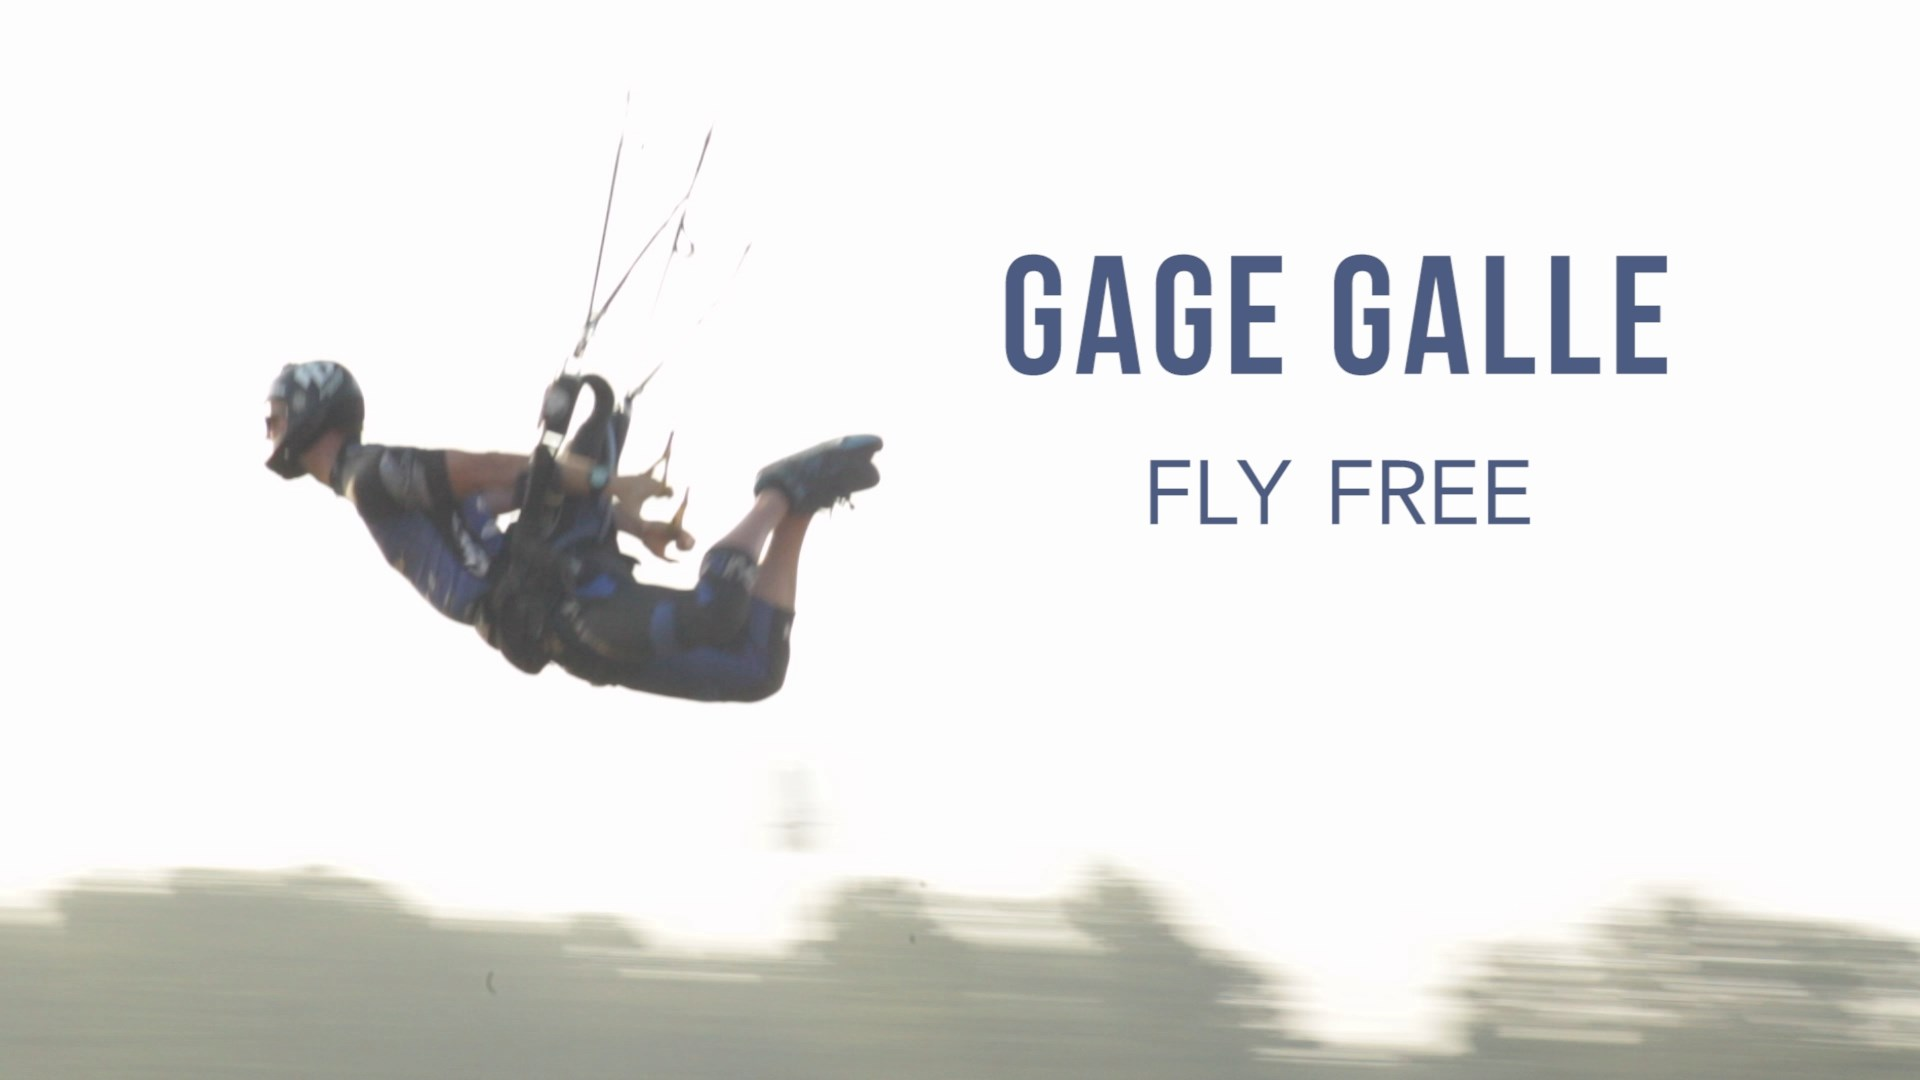 Gage Galle